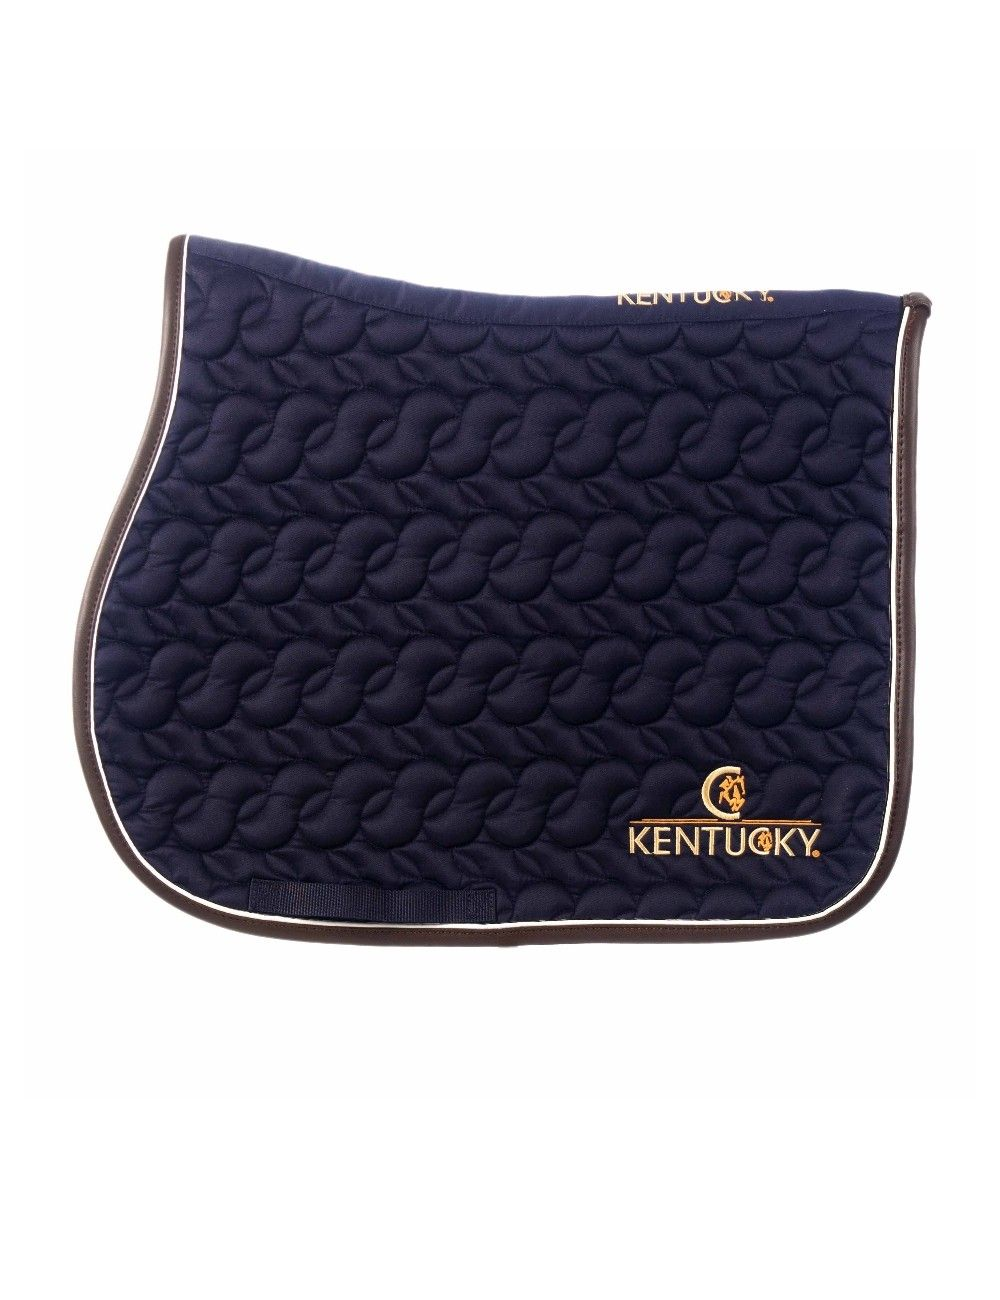 Kentucky Horsewear Saddle Pad - 1